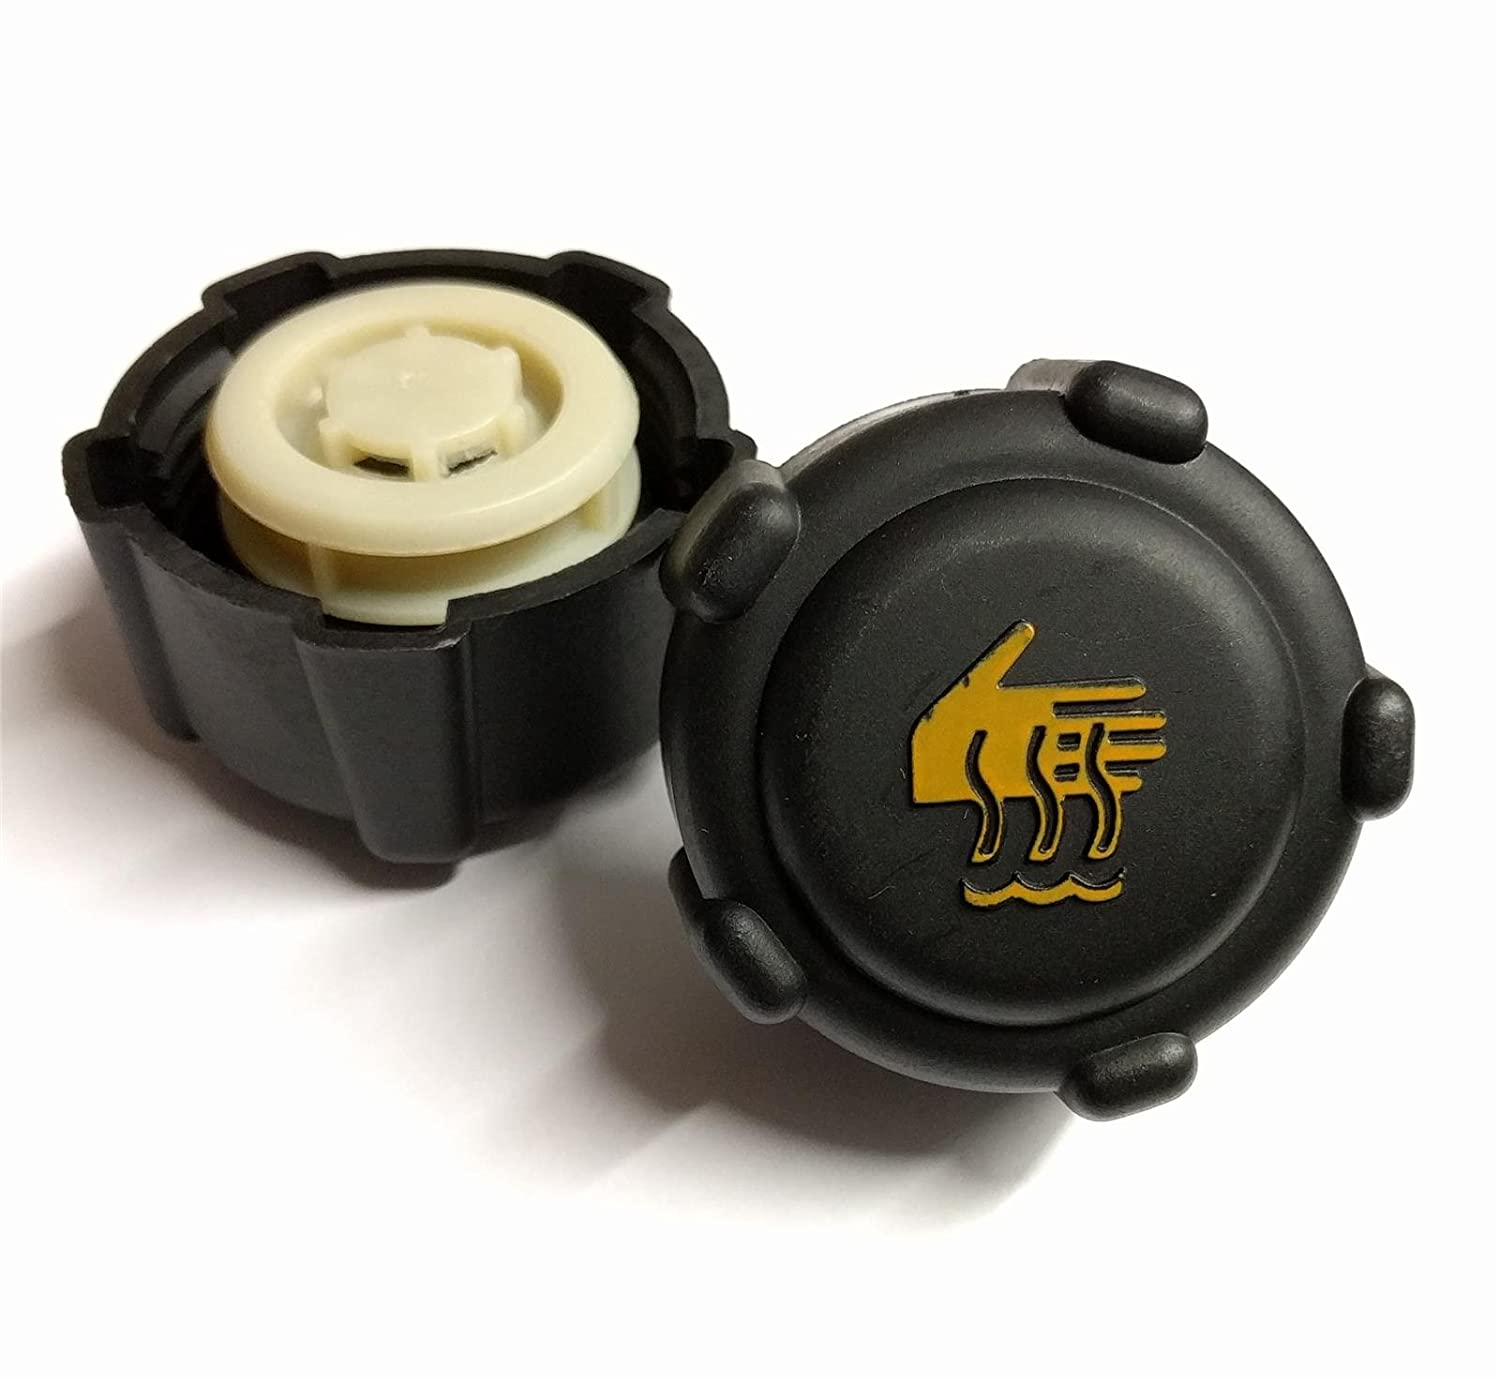 New Radiator Expansion Water Tank Cap Replace Existing Cap AutoPower